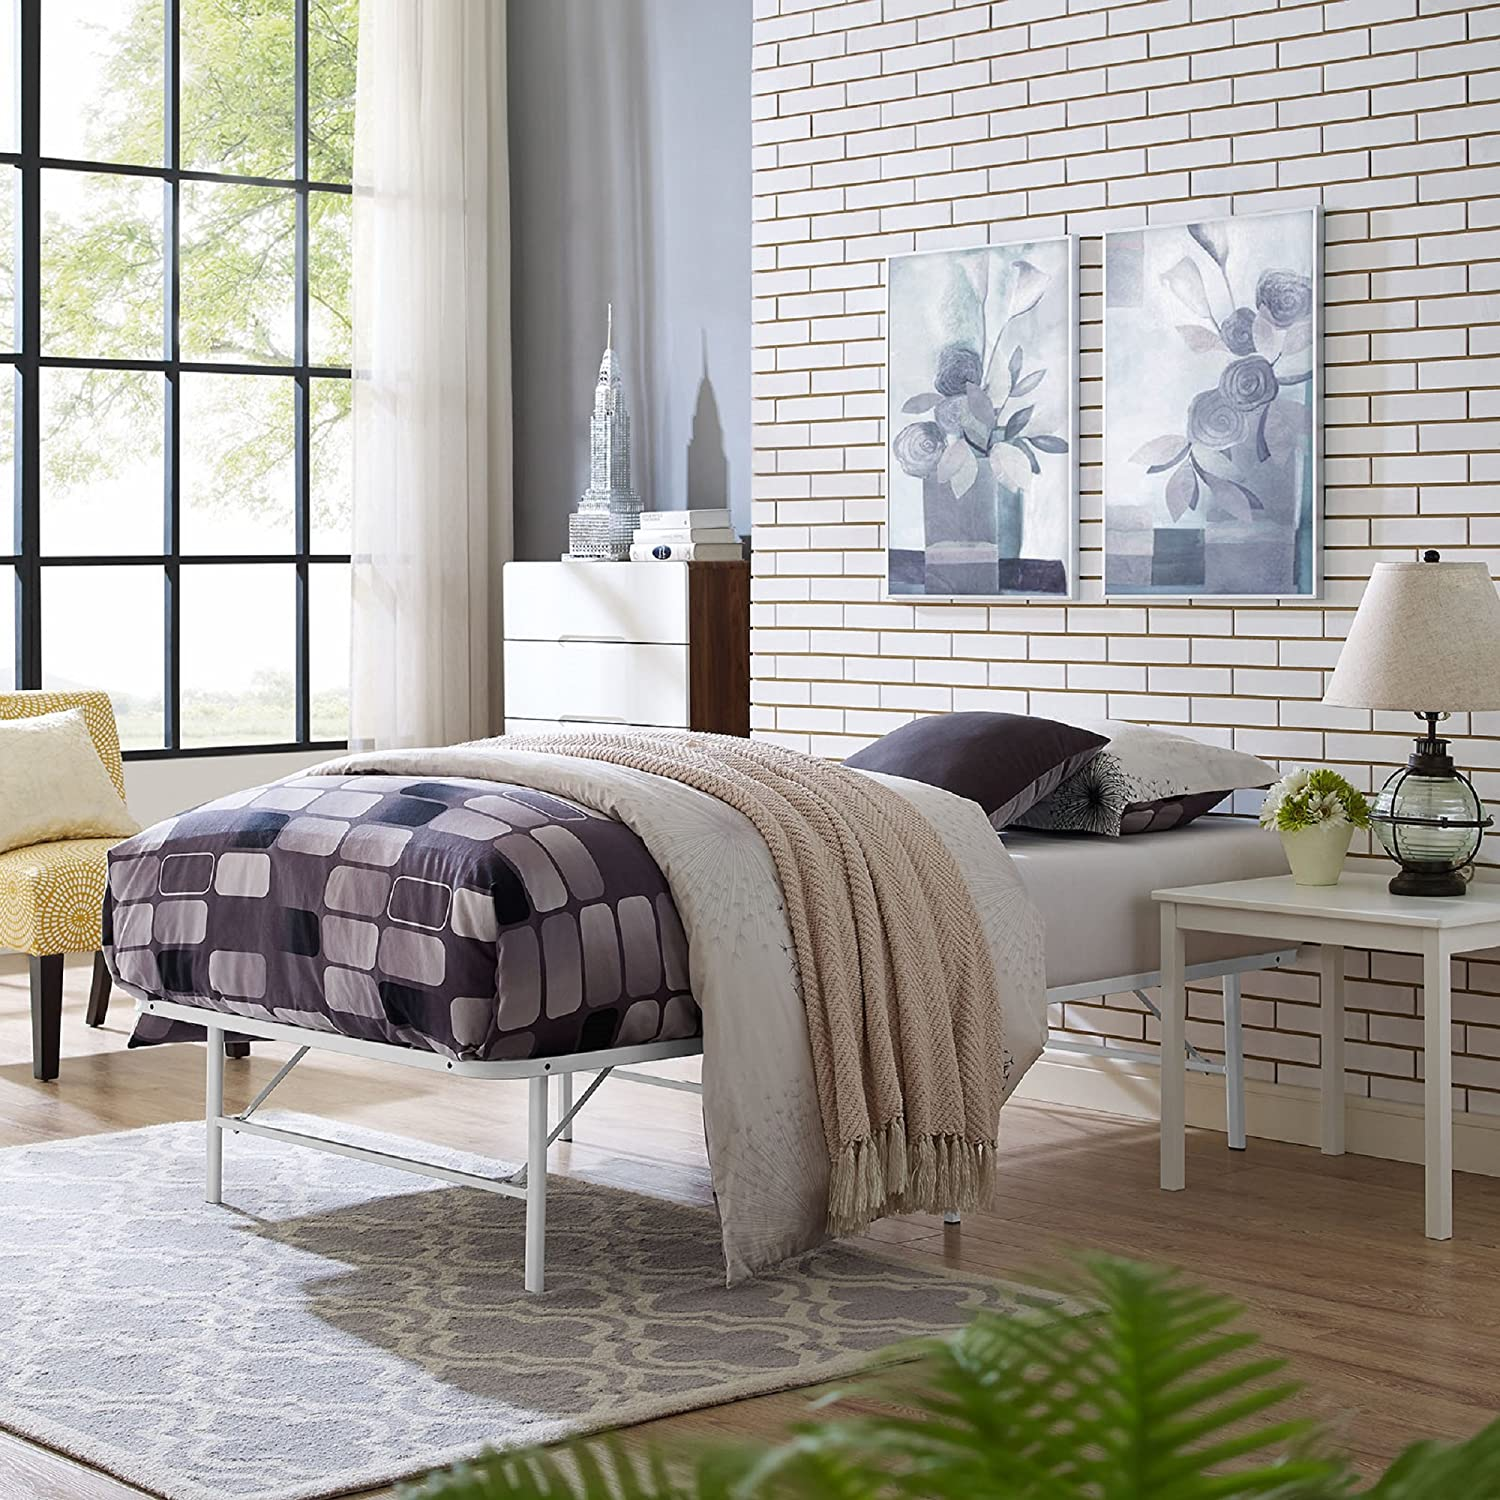 Best for Durability Twin Bed: Modway Horizon